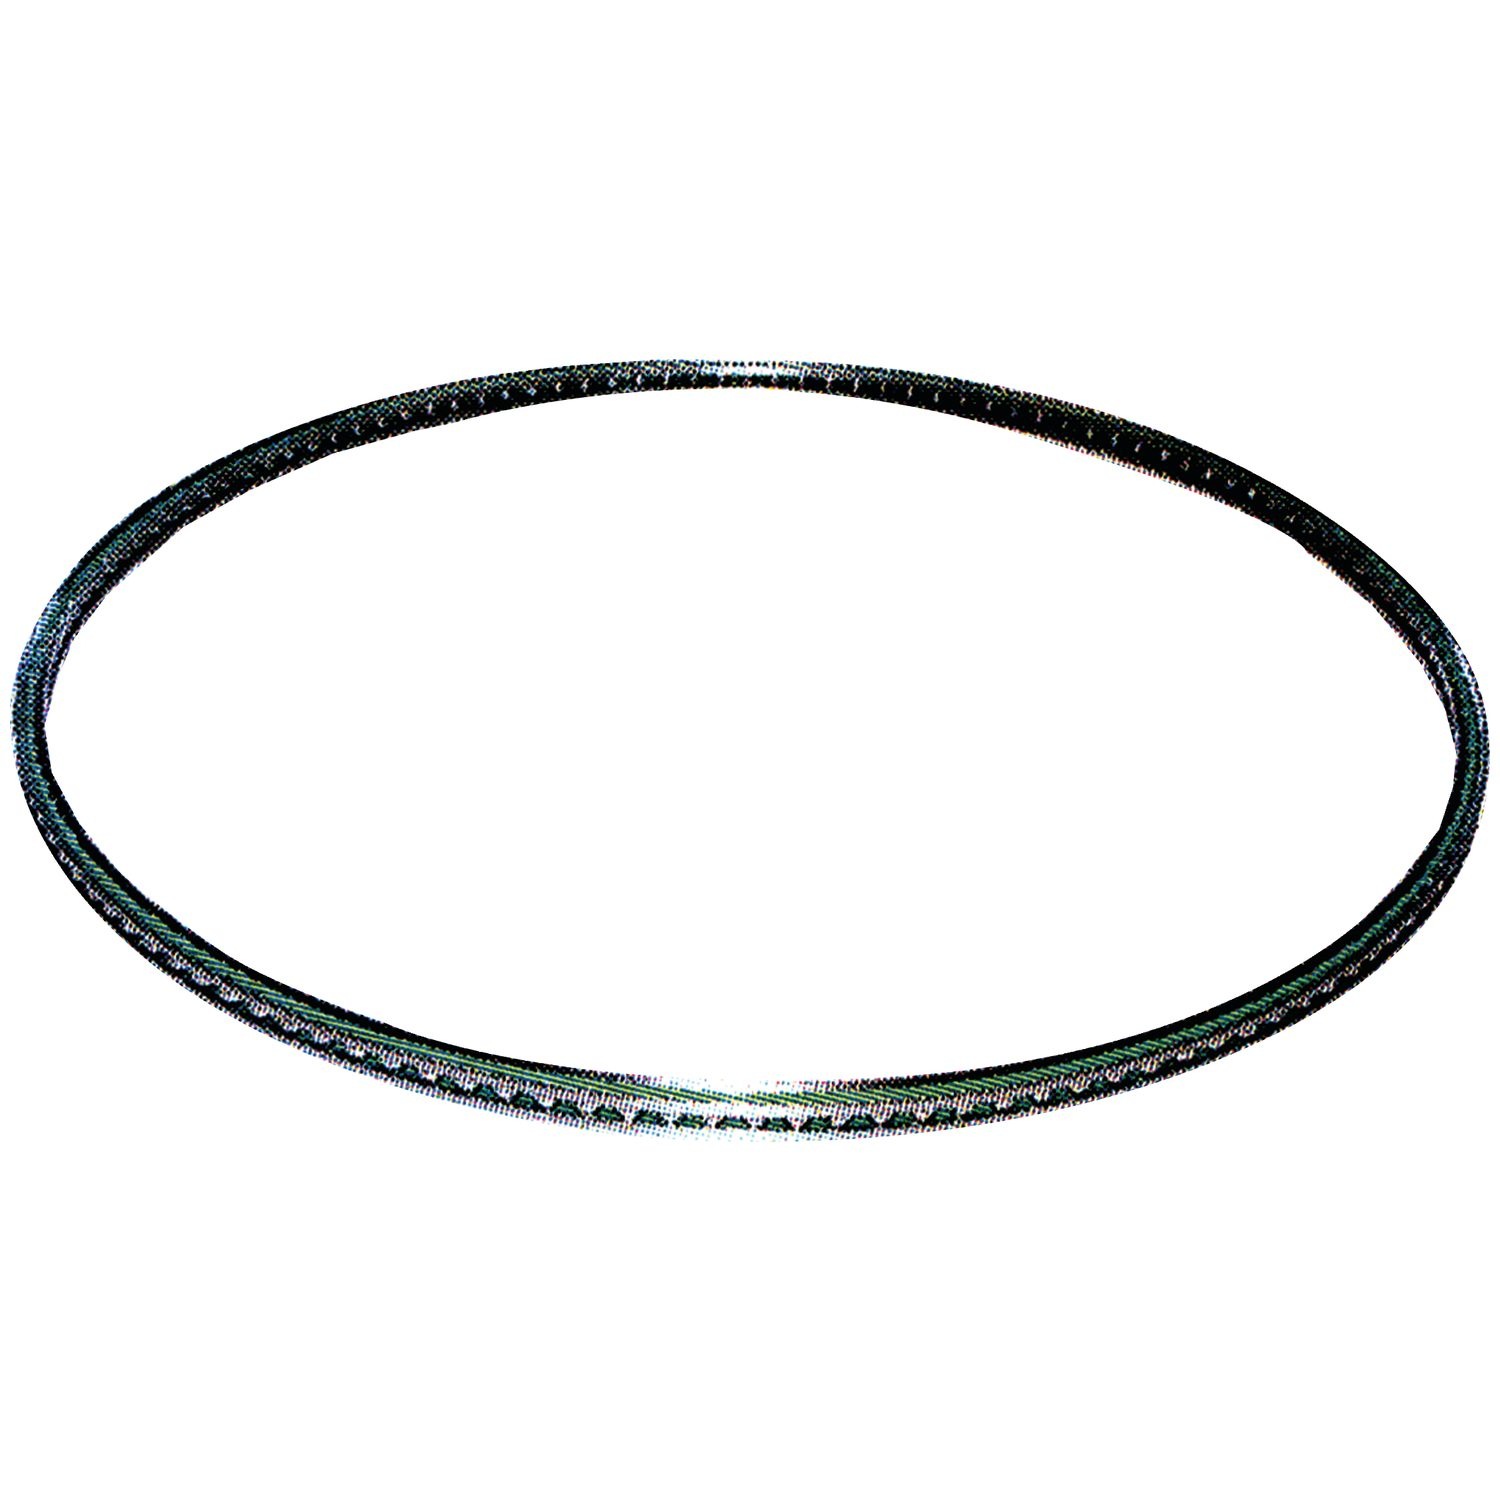 R4230 - Ball Bearing - Wire, Duo Profile